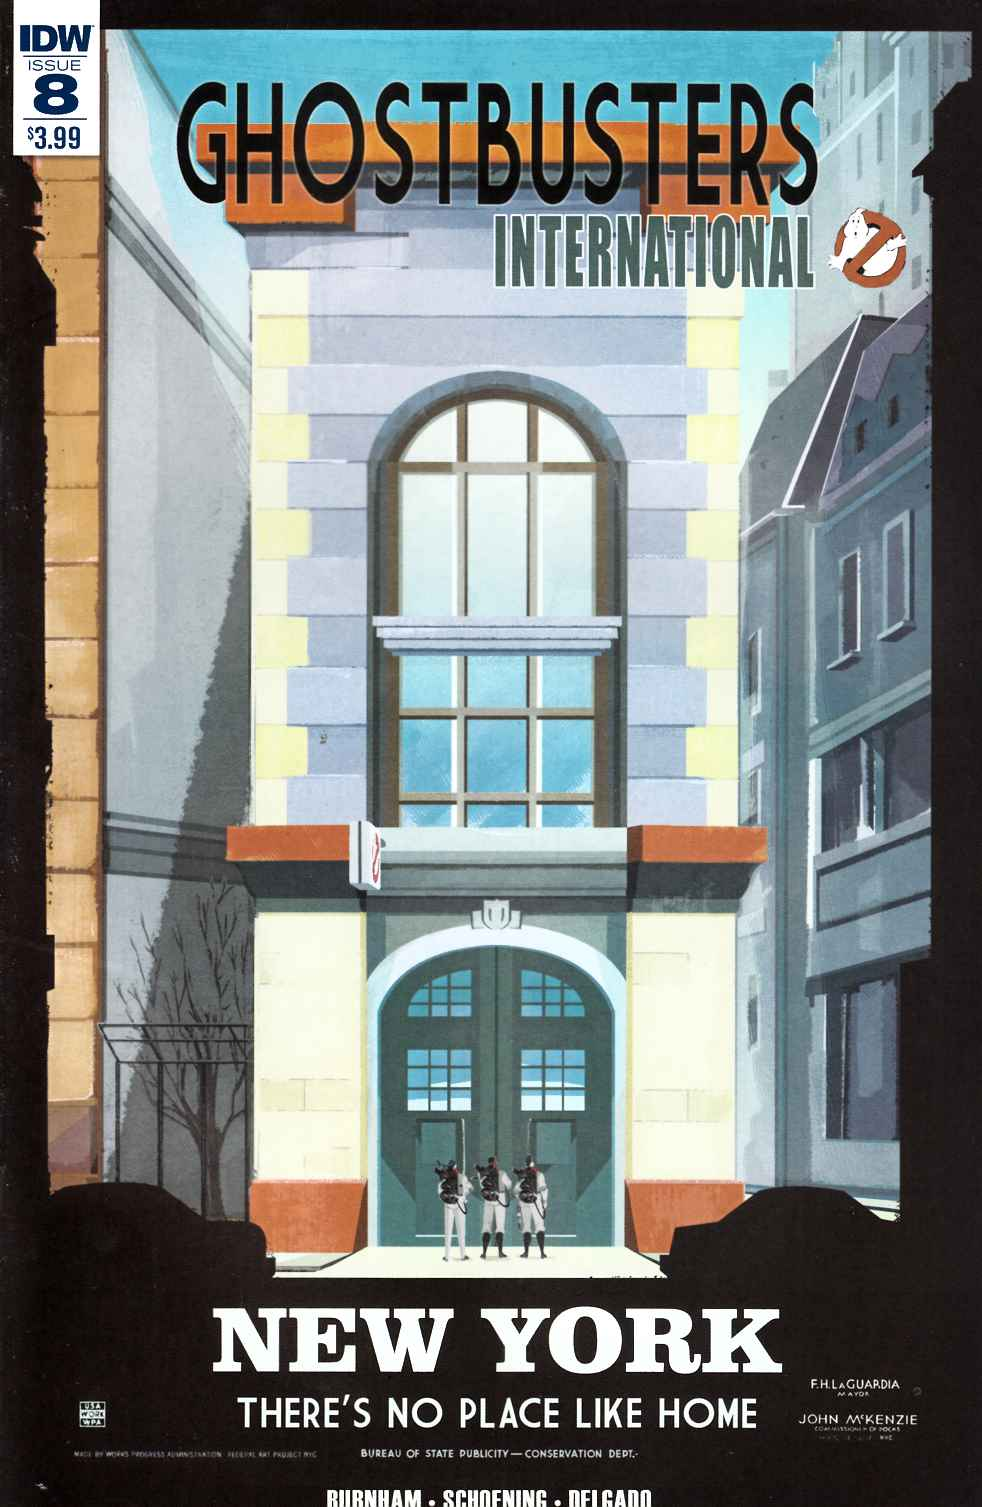 Ghostbusters International #8 [IDW Comic] THUMBNAIL